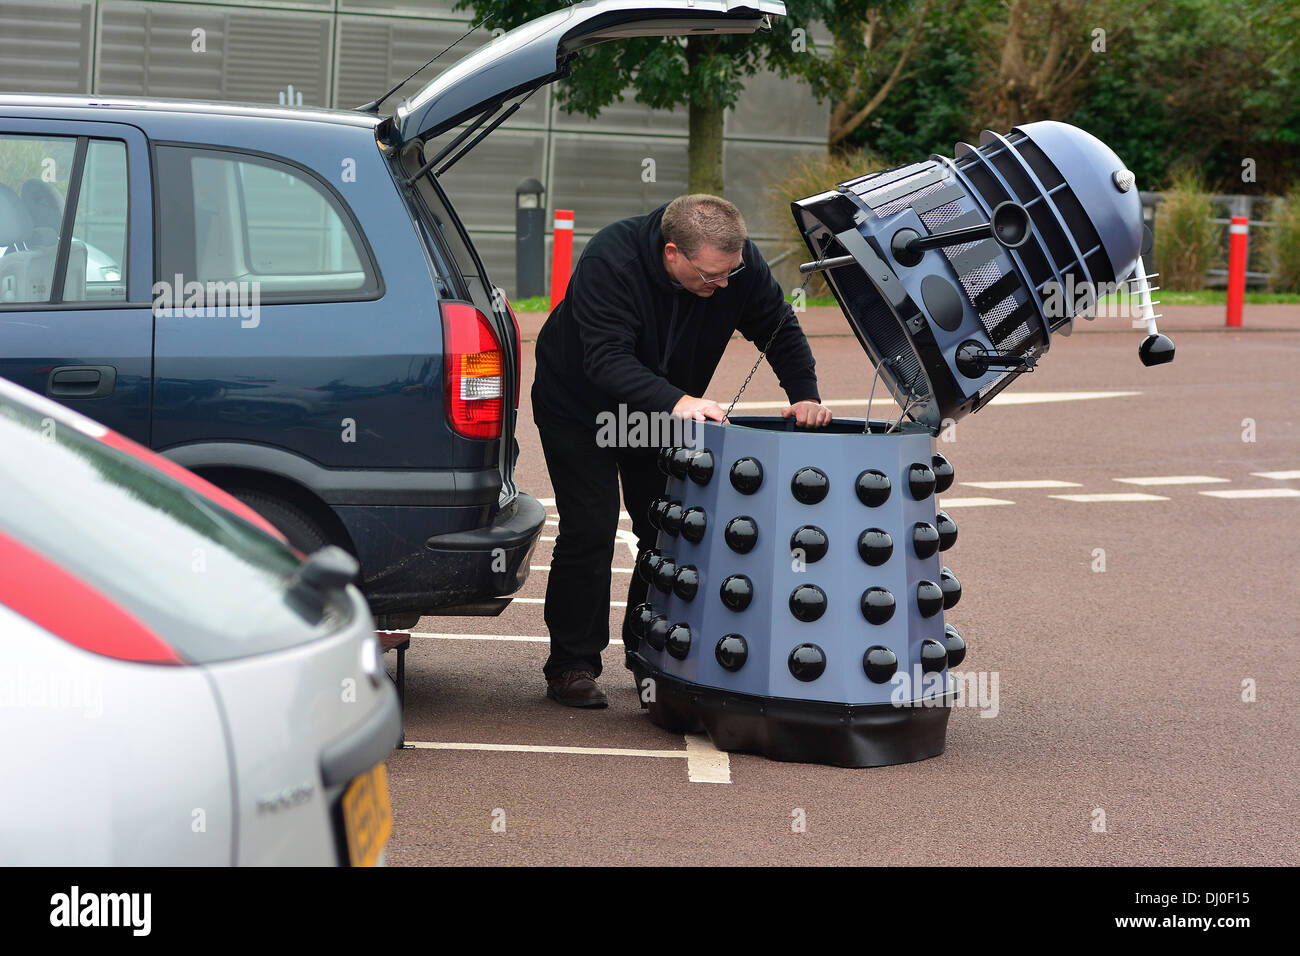 Ray Hyde from Barnsley assembles one of the 20 Daleks displayed at the 'Science of the Timelords' event are assembled at The National Space Centre at Leicester. - Stock Image